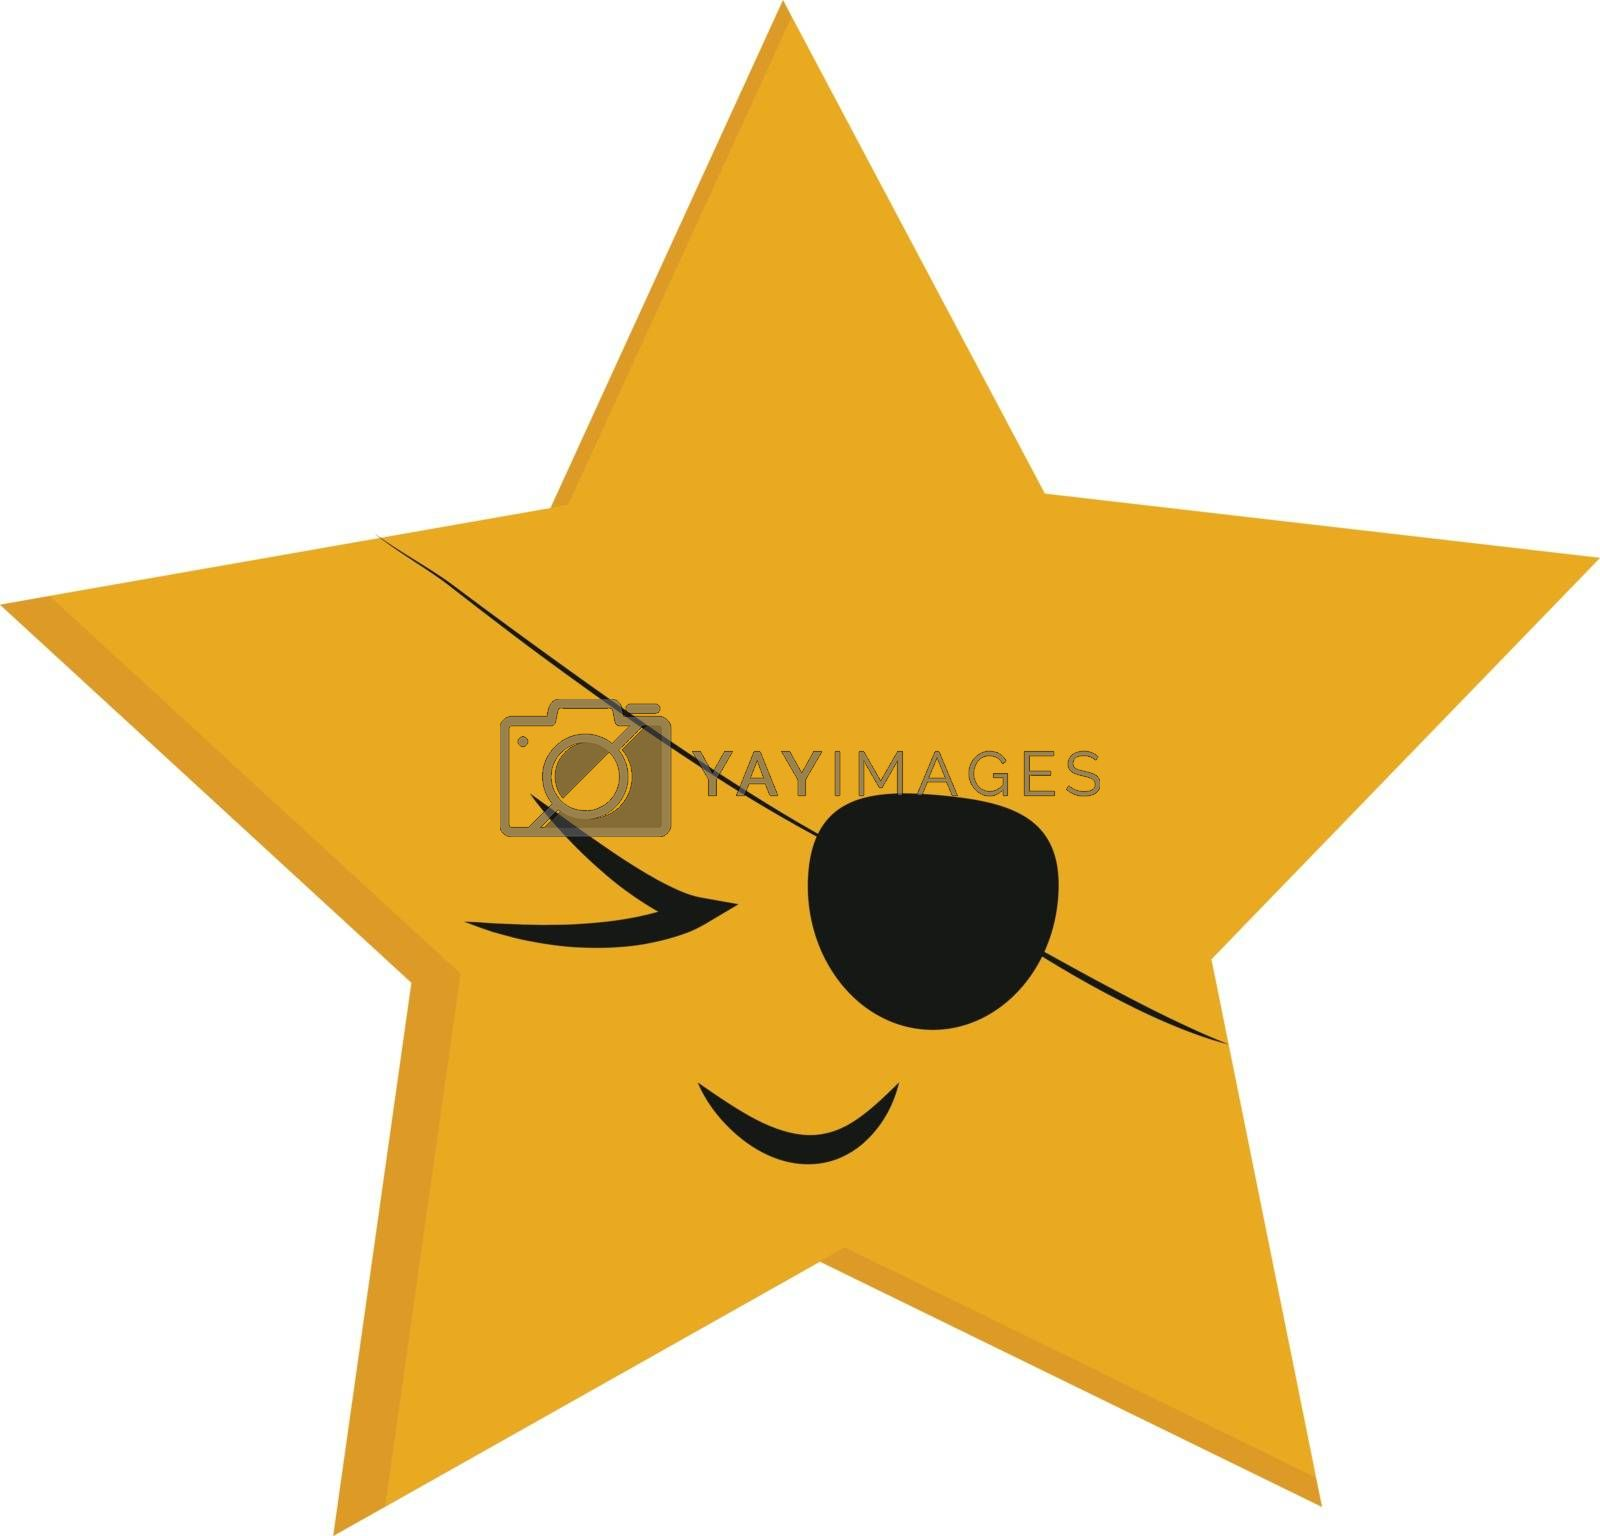 Royalty free image of Emoji of a five pointed yellow star vector or color illustration by Morphart